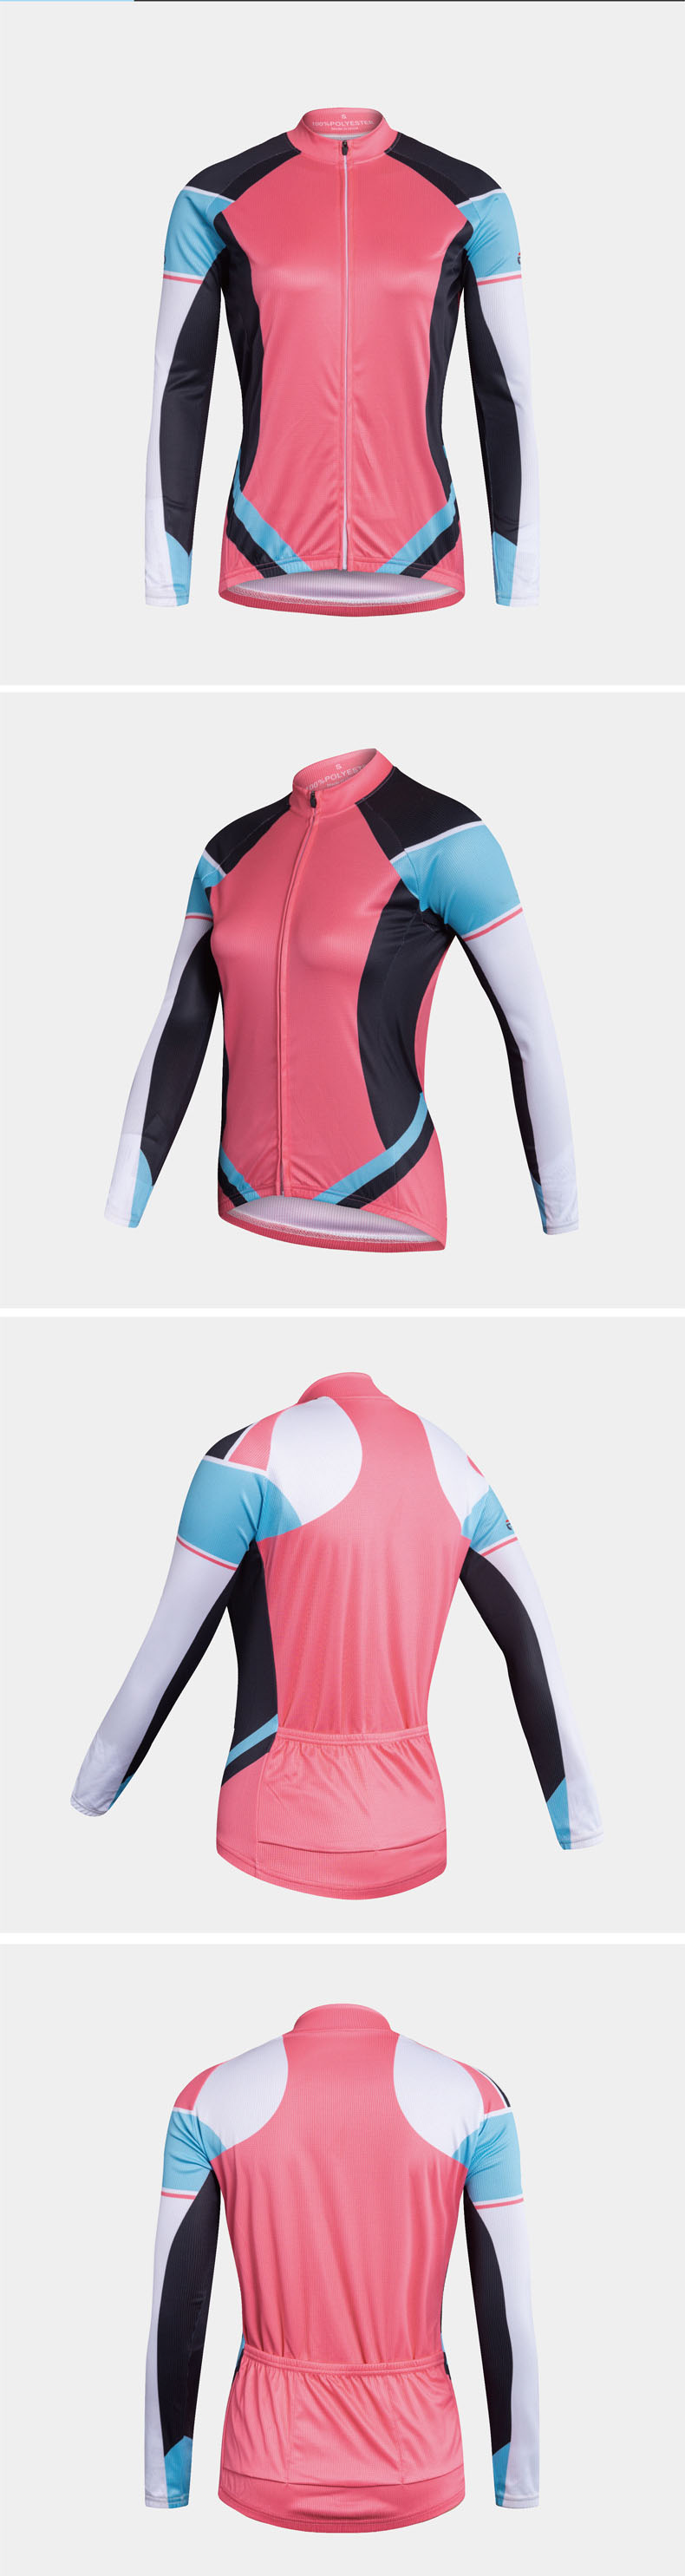 Bike Cycle Sport Wear Bike Racing Wear Bike Shirts Cycling Jersey Custom For Women